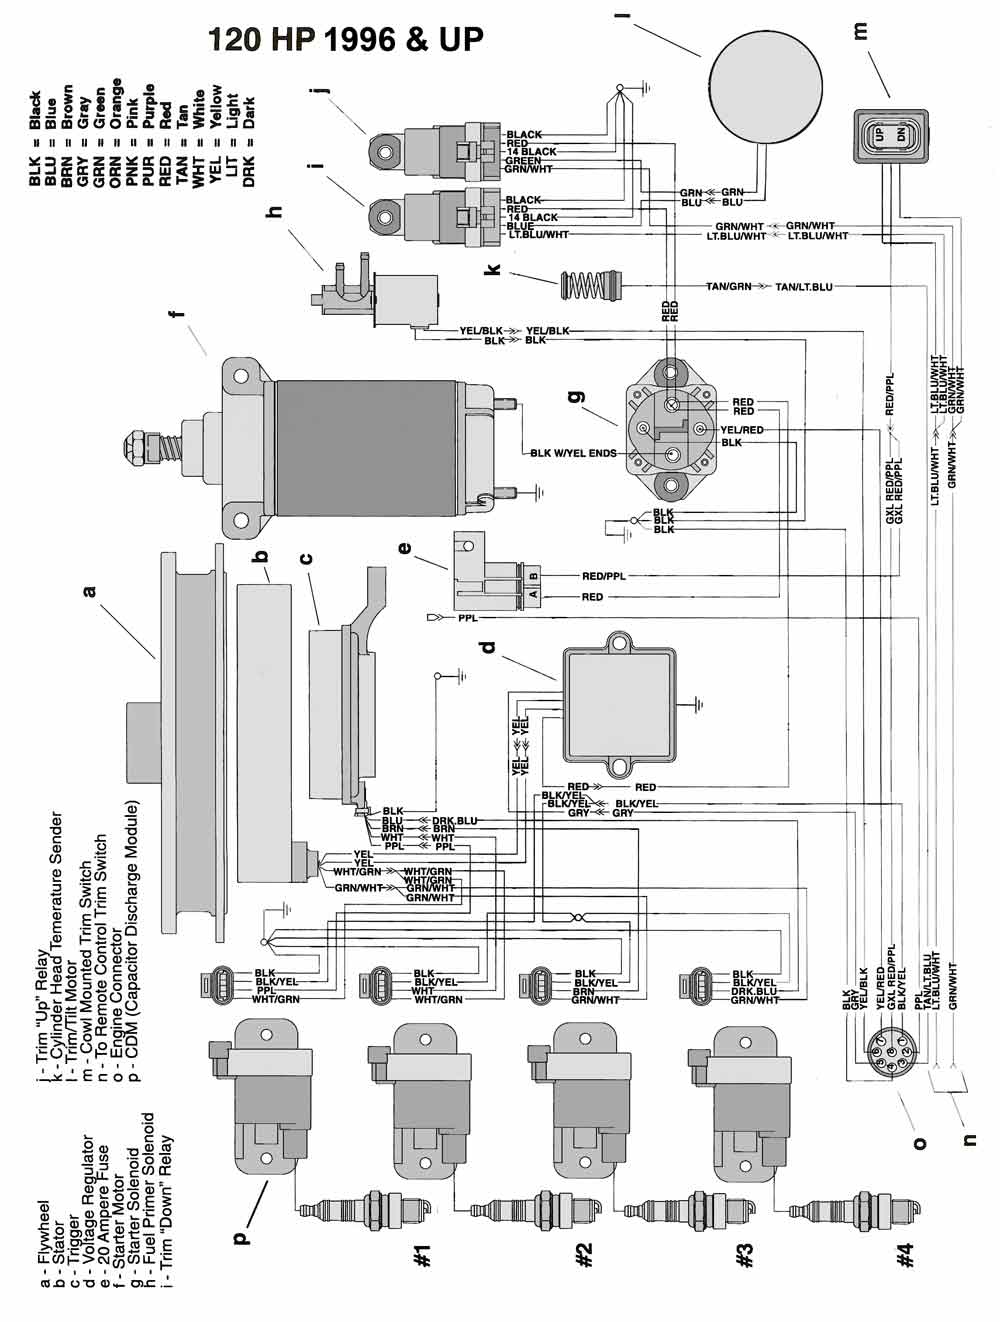 Force Outboard Motor Wiring Diagram Not Lossing 1987 Mercruiser Mastertech Marine Chrysler Diagrams Rh Maxrules Com 85 Hp Mercury Key Switch